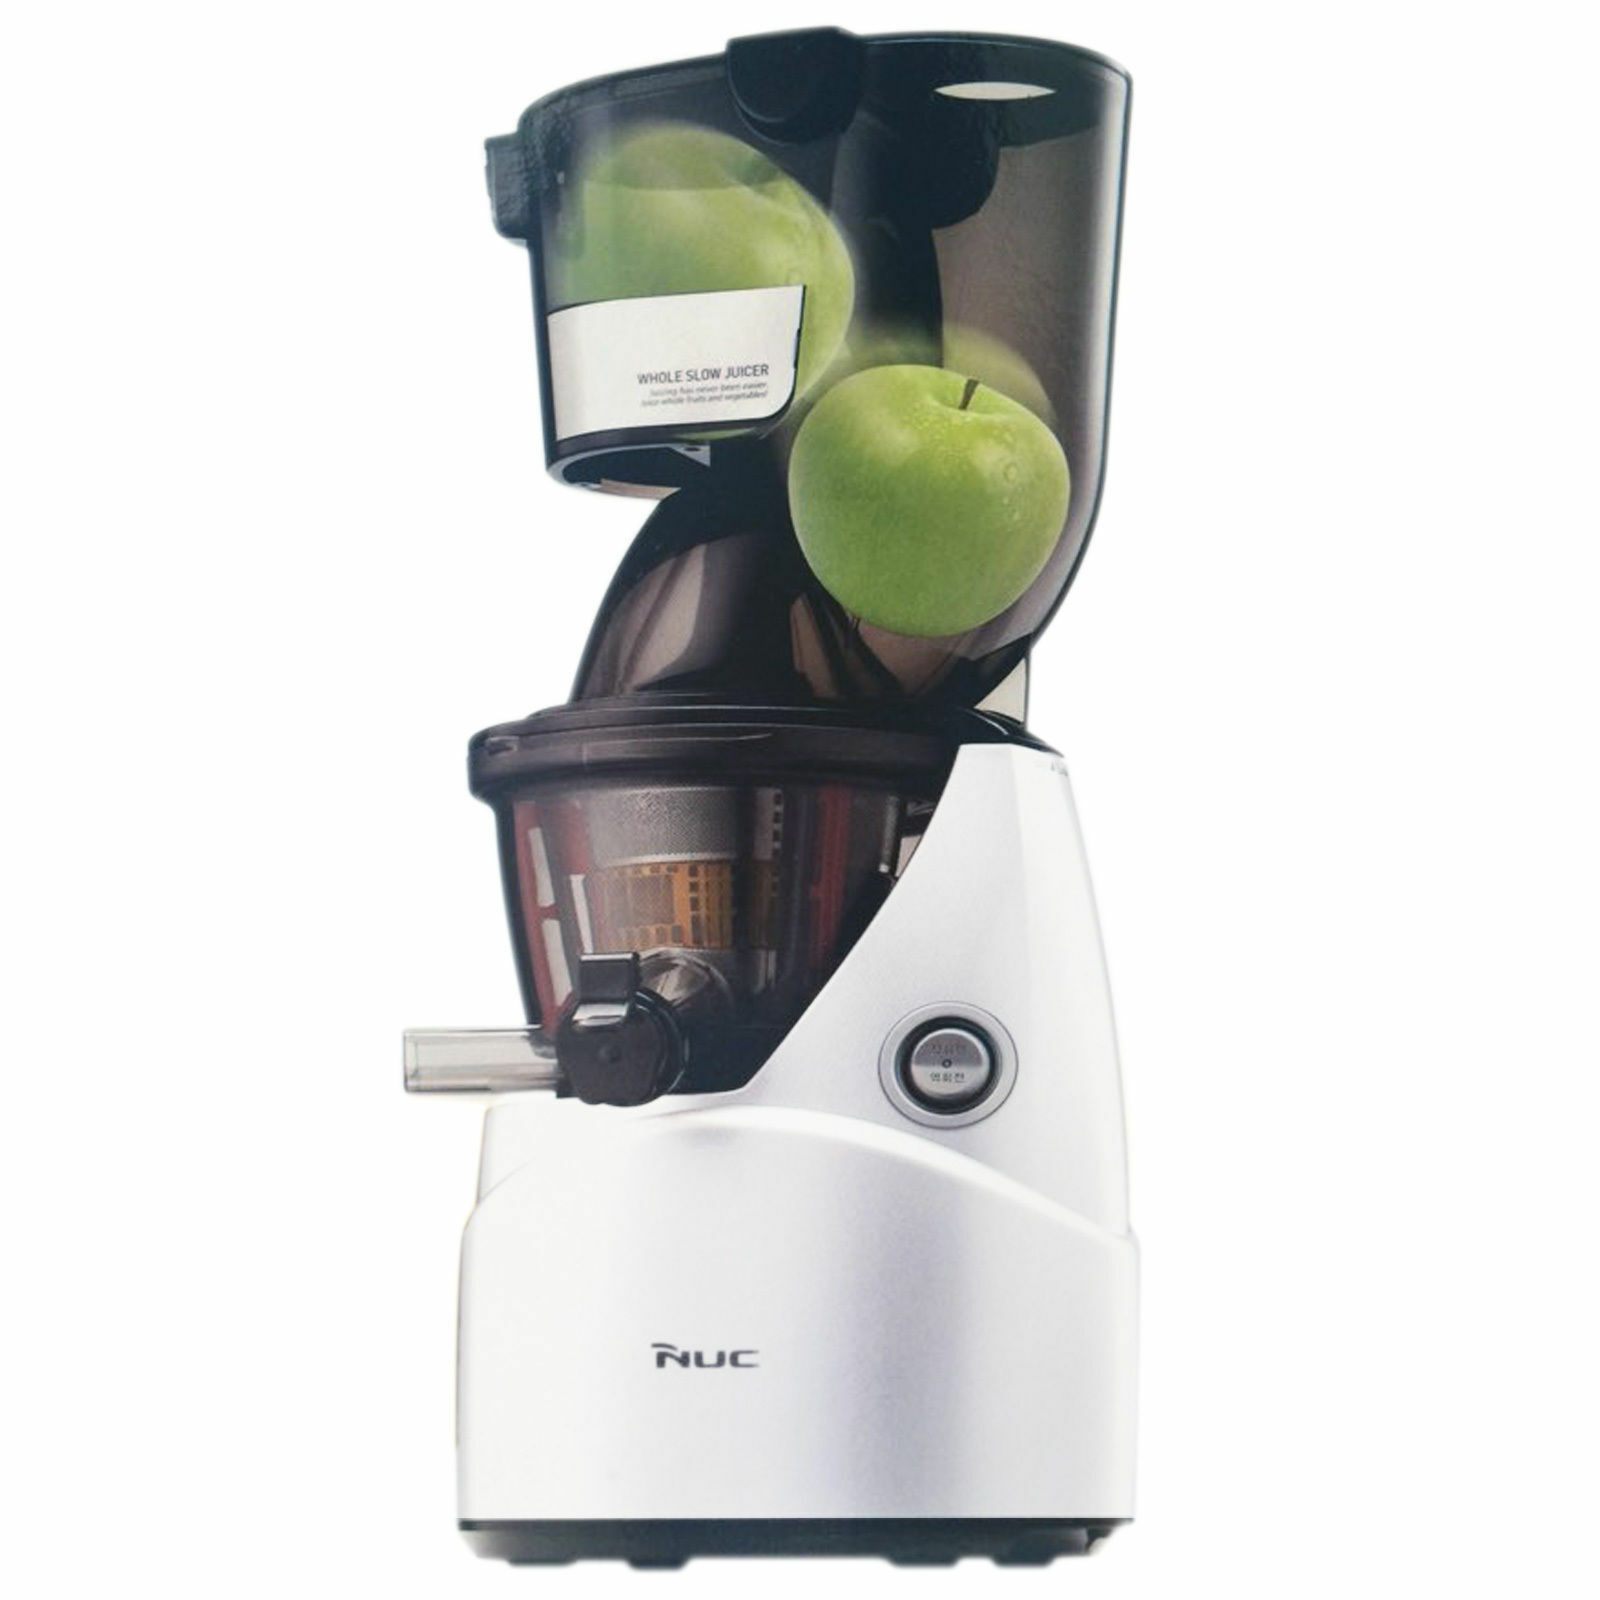 NEW NUC Kuvings KJ-621W Whole Mouth Slow Juicer Fruit Extractor (B6000) White